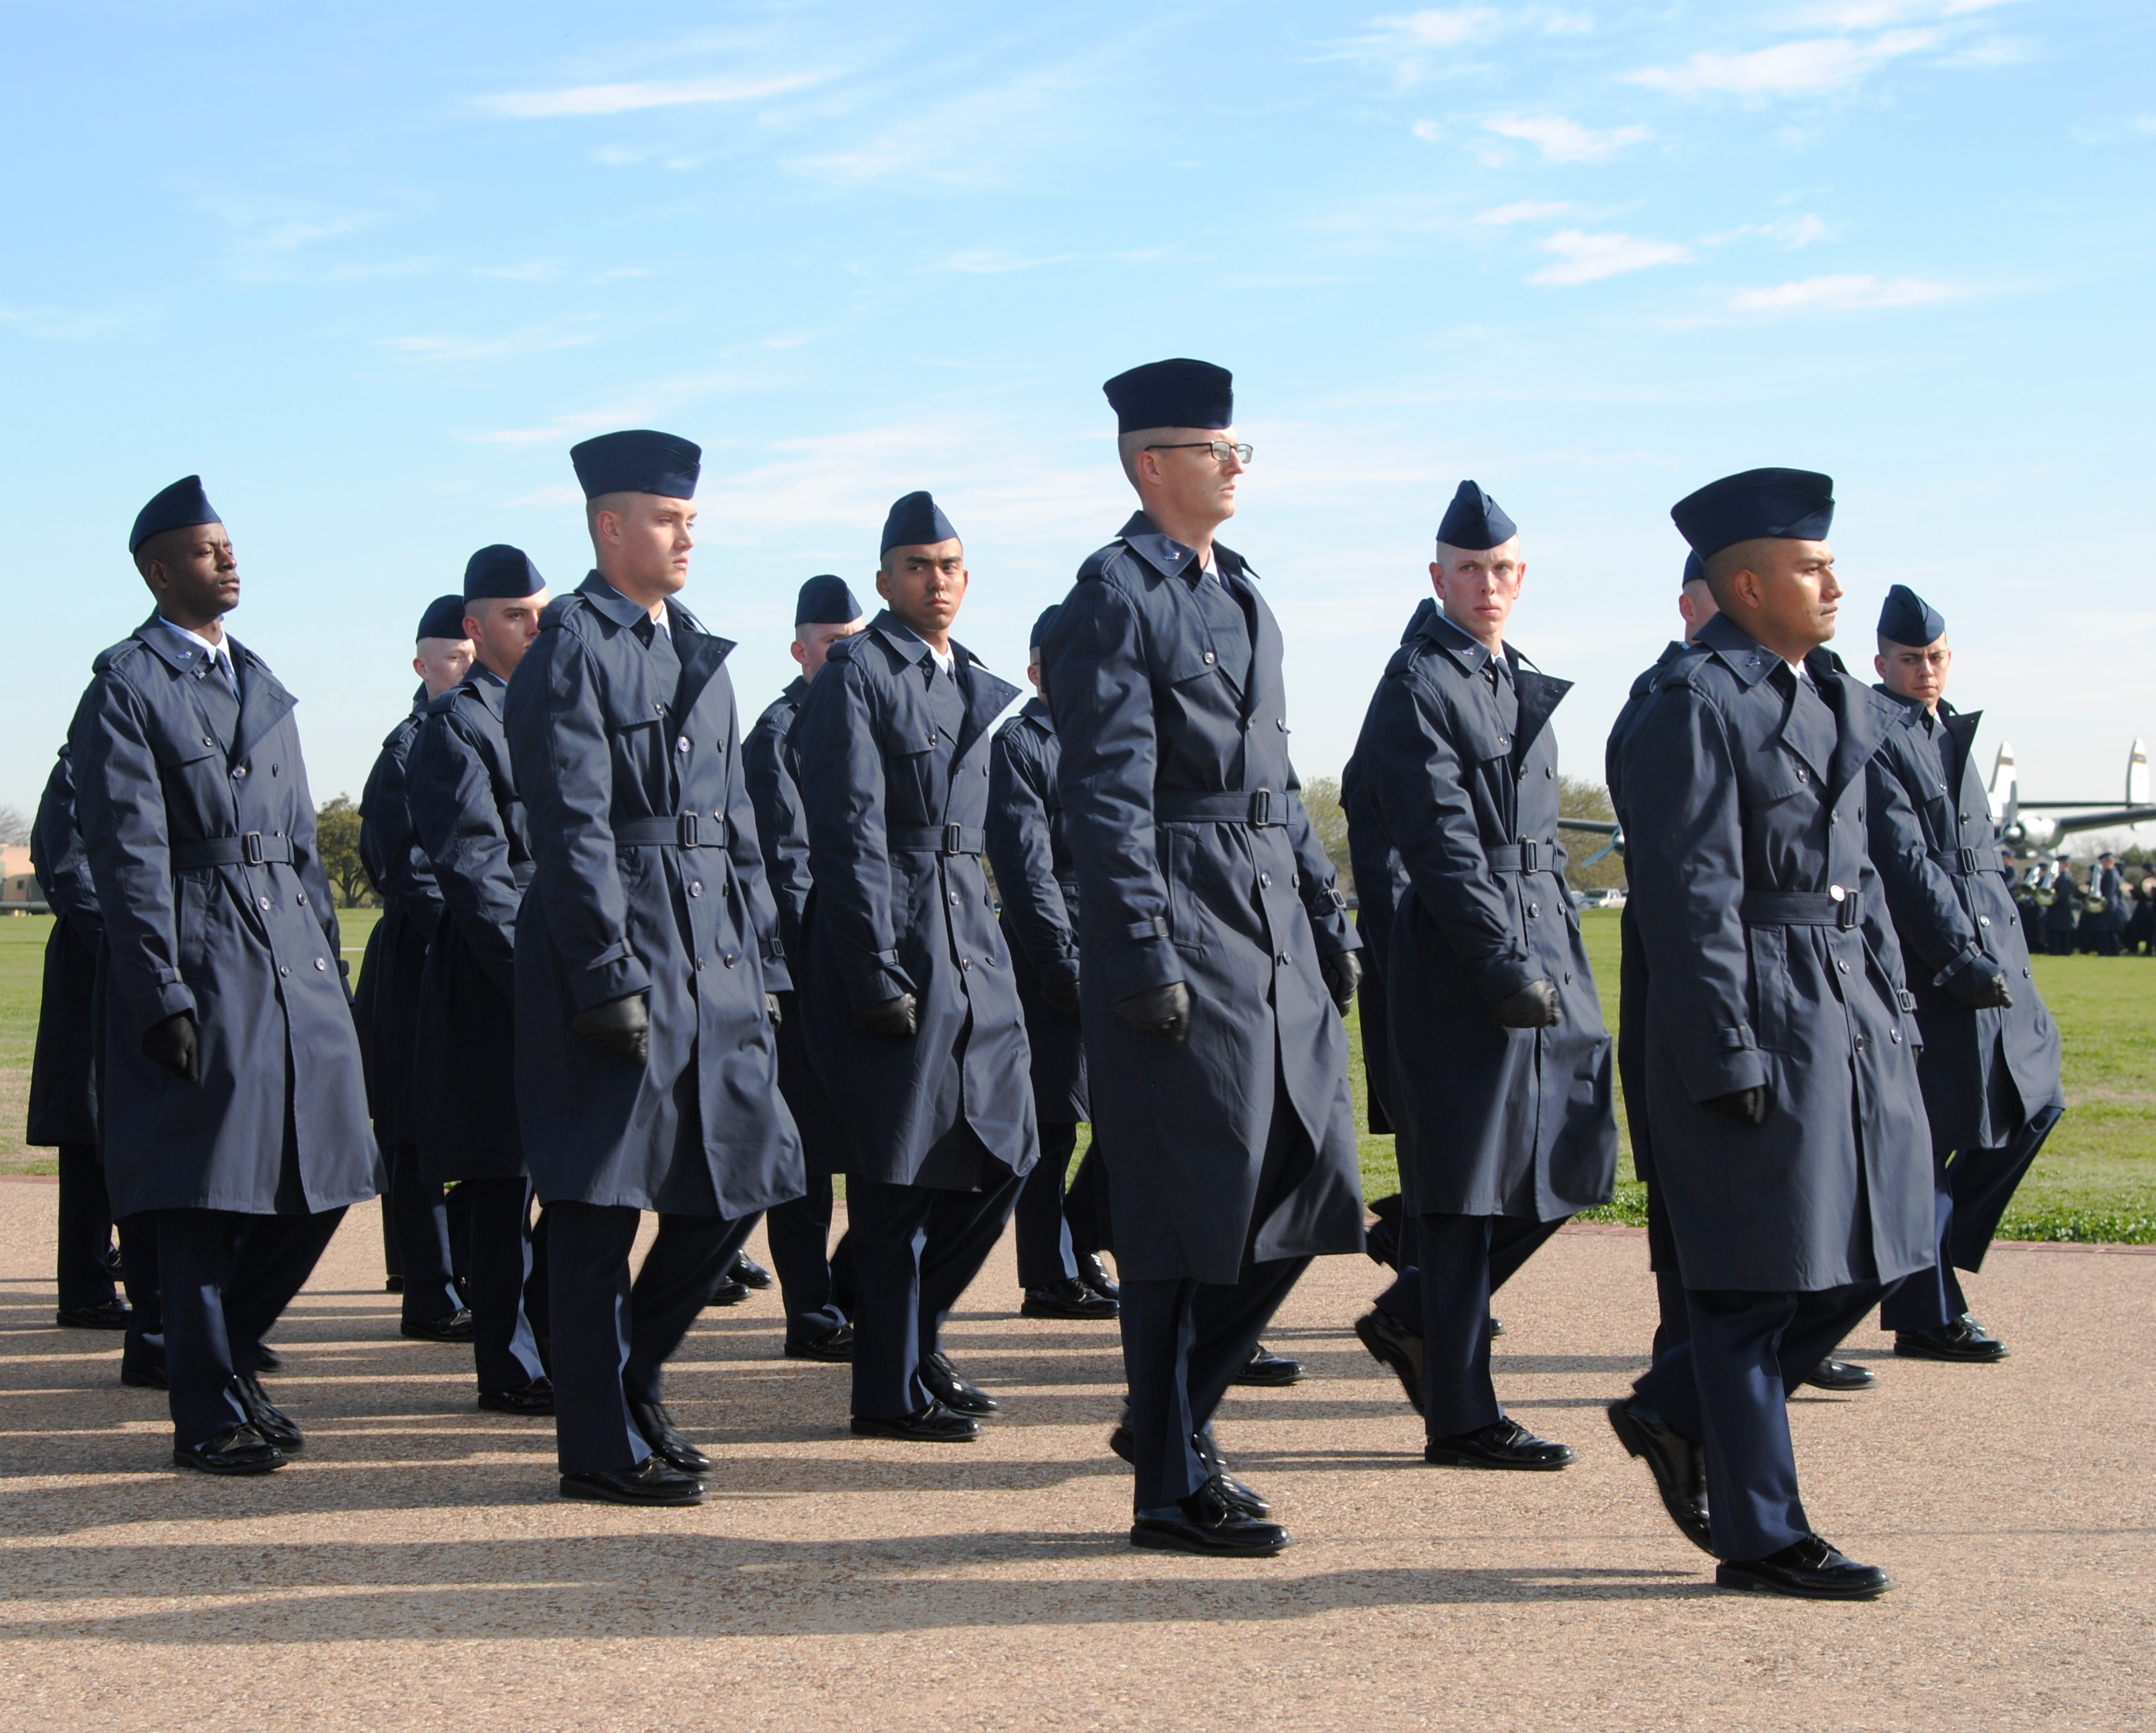 Air Force Bmt Daily Schedule – Wonderful Image Gallery